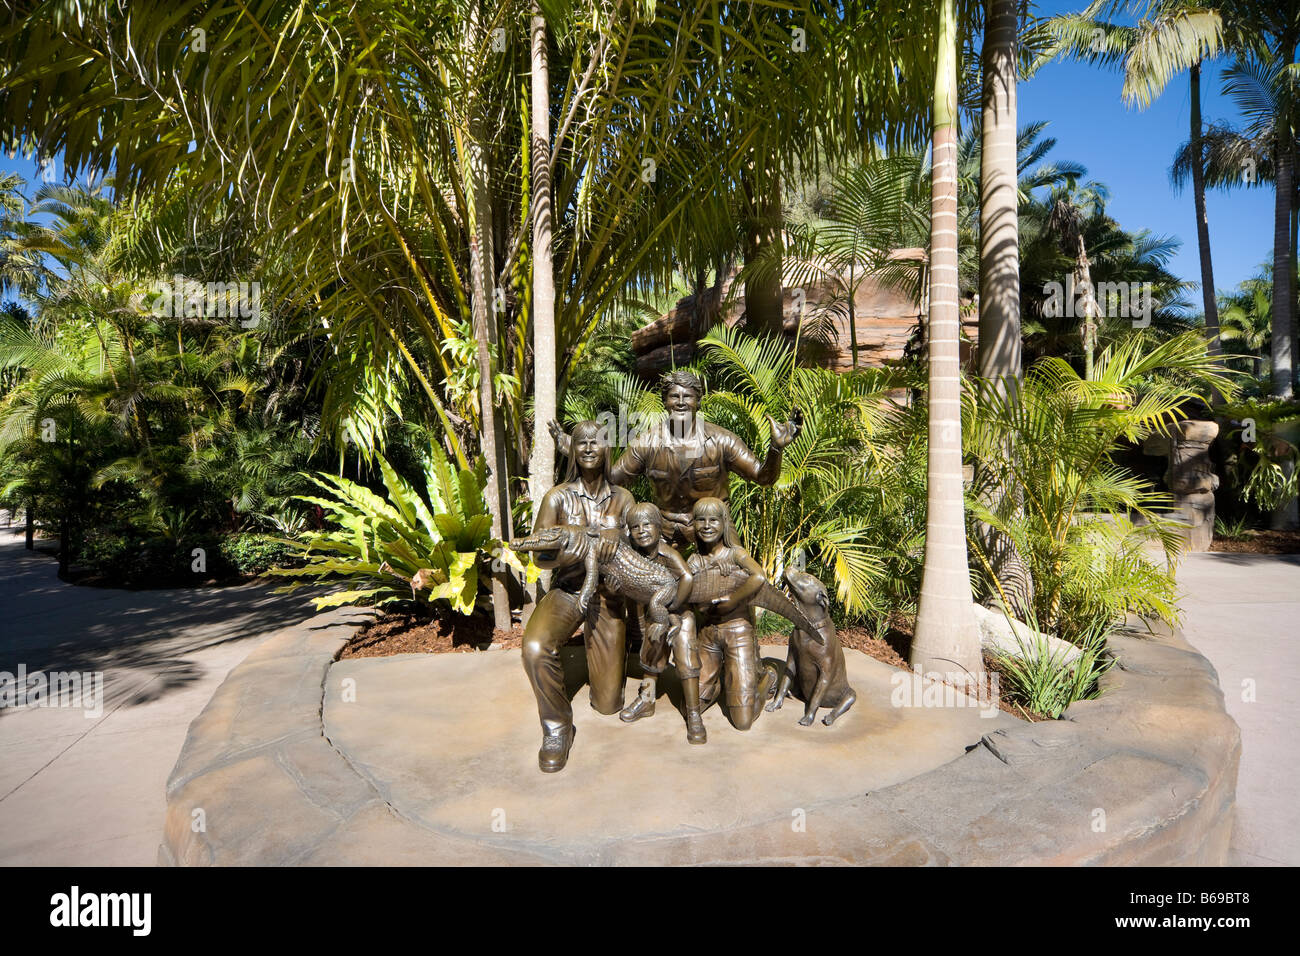 Bronze sculpture of Steve Irwin with his family in Australia Zoo. - Stock Image